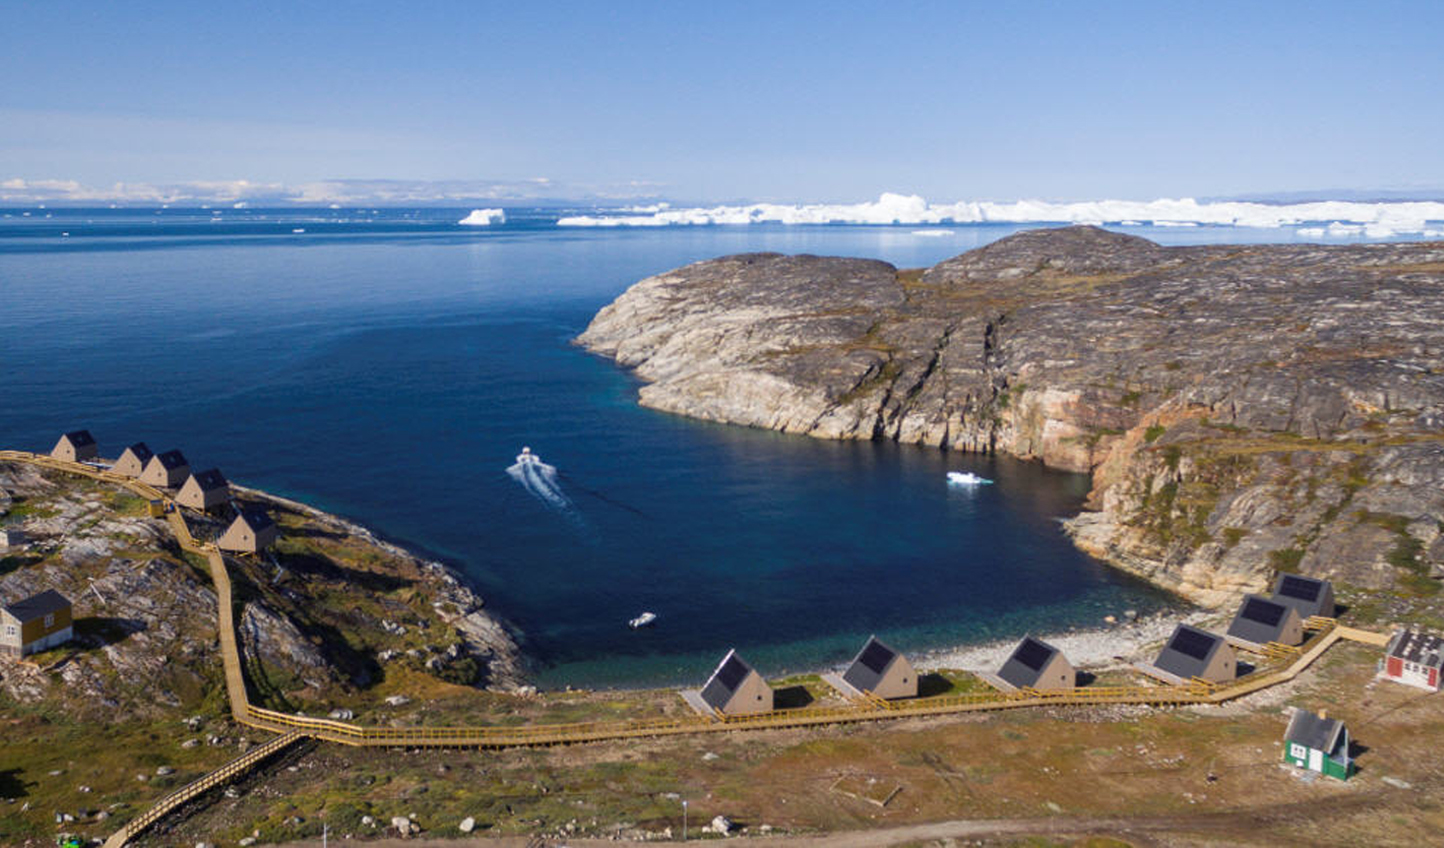 One of these cabins will be yours in Disko Bay